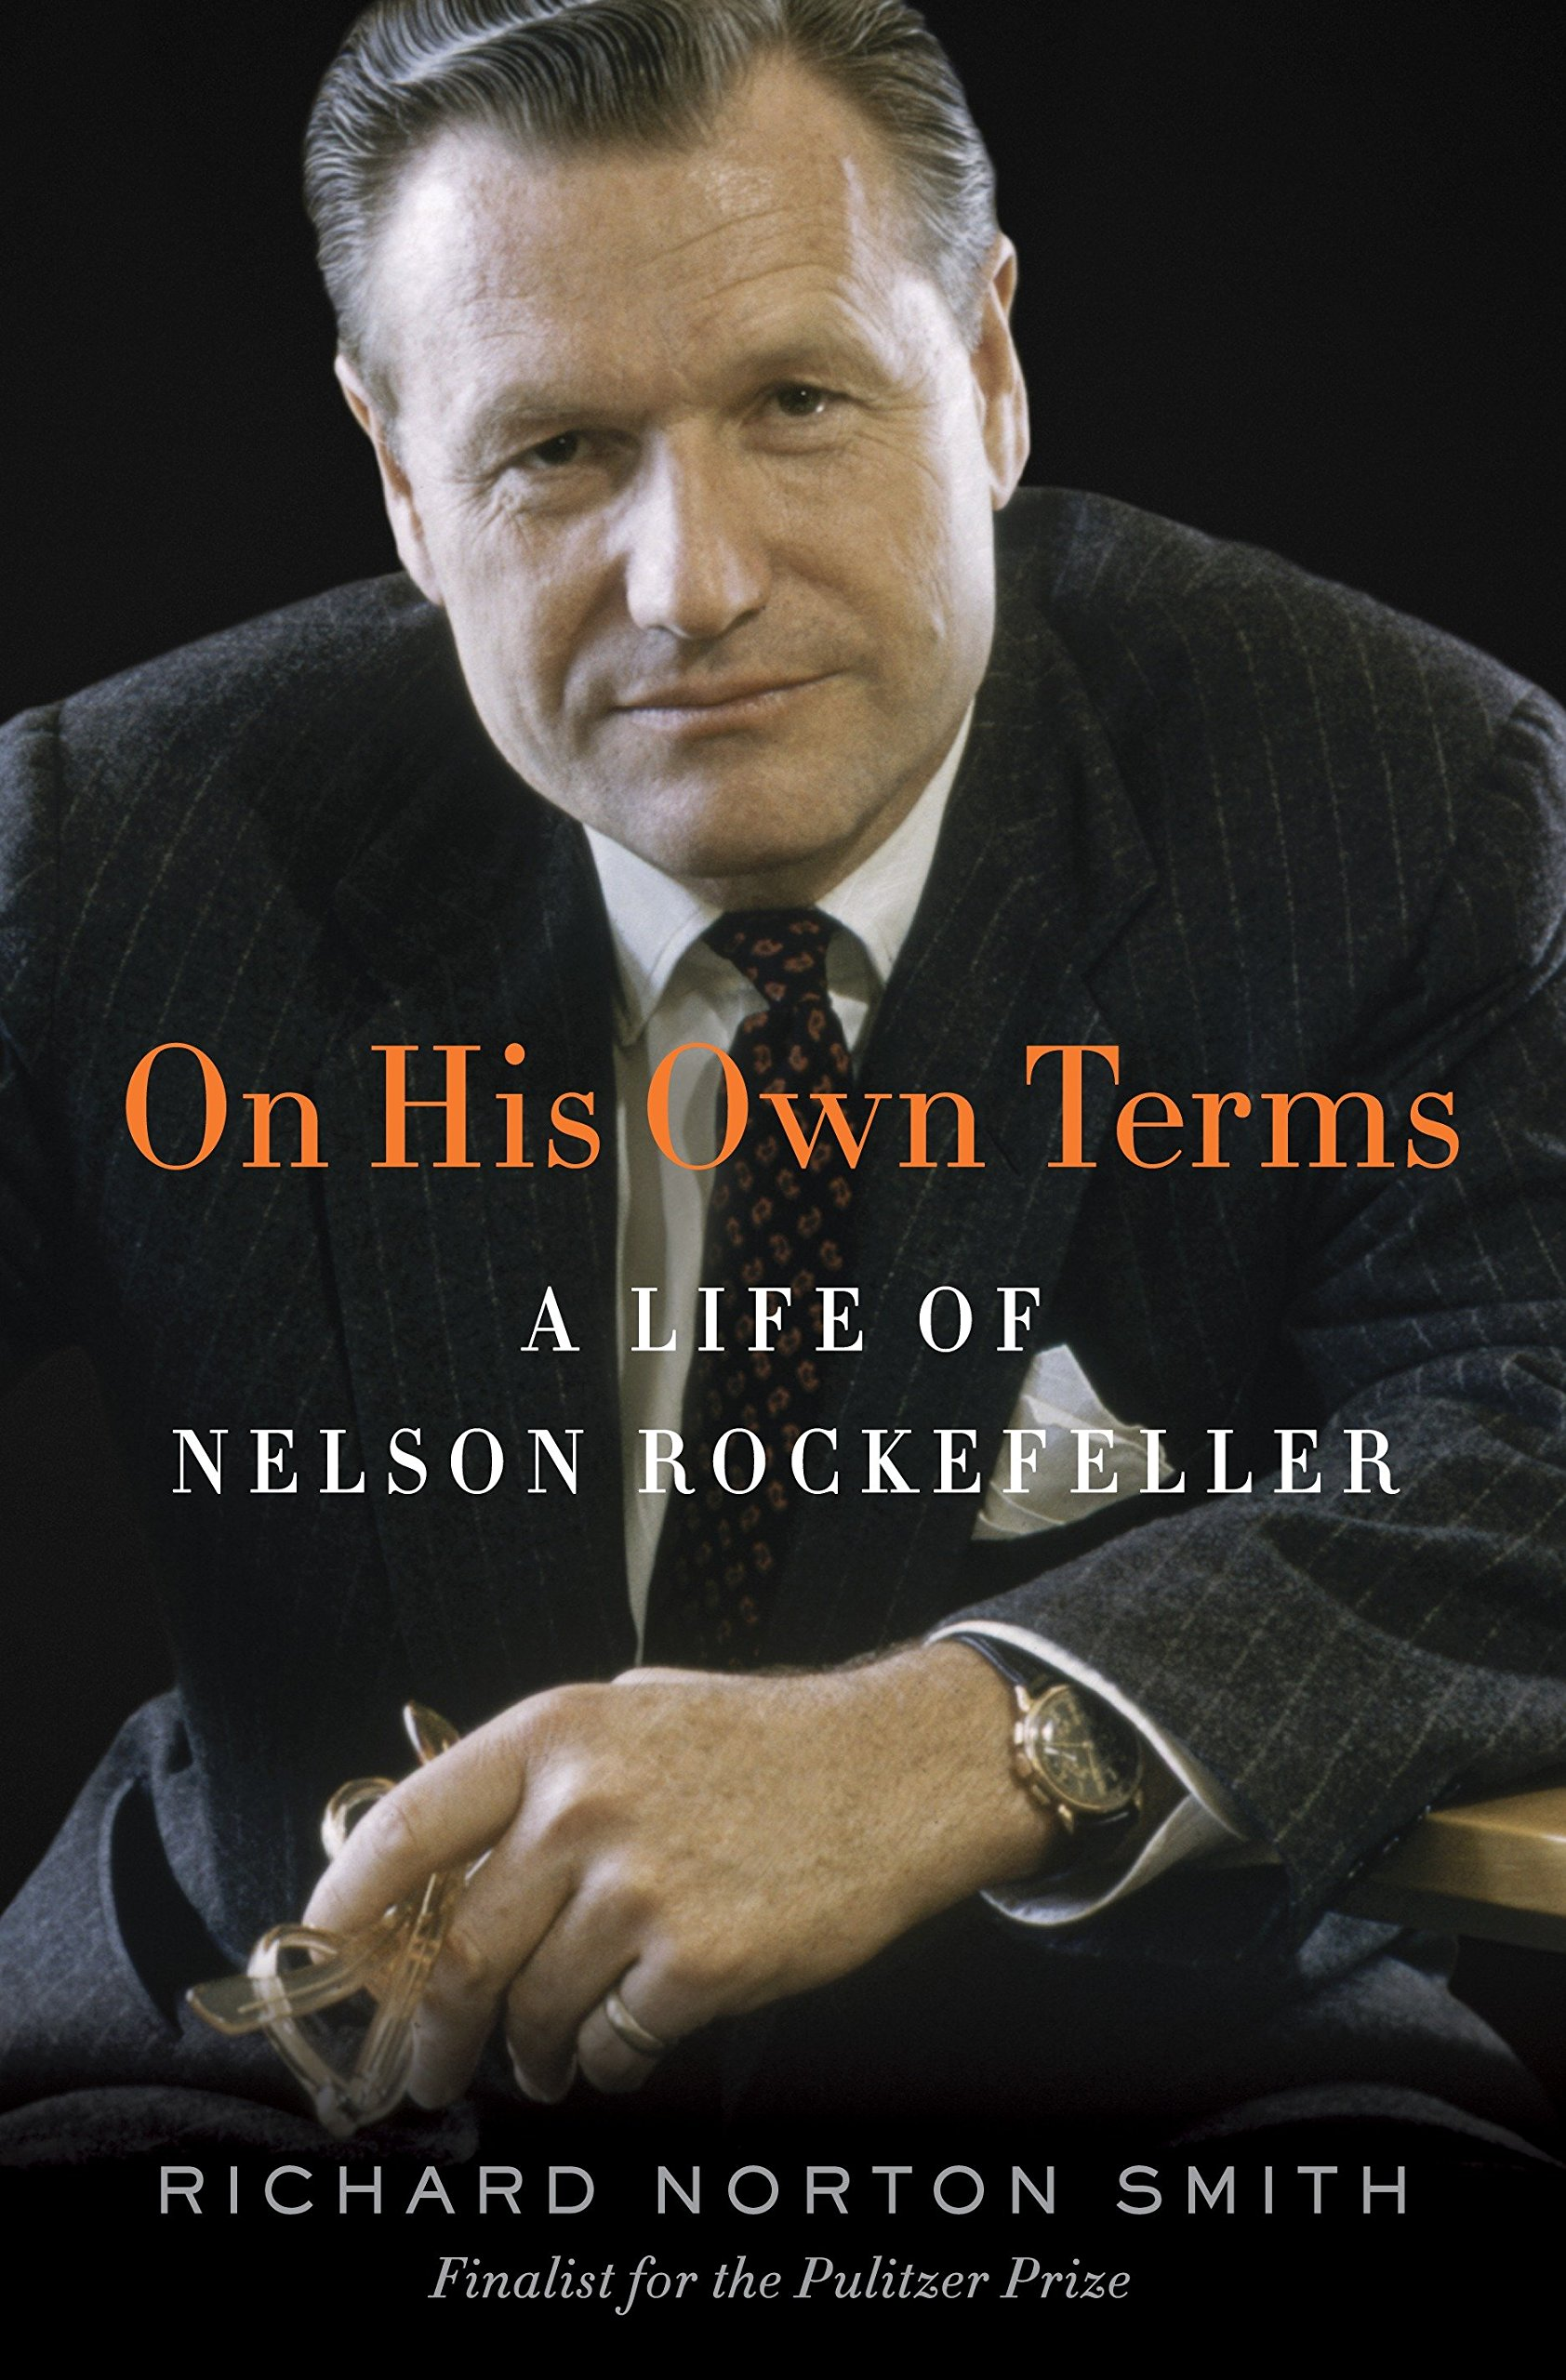 Nelson Rockefeller: biography and photos 66